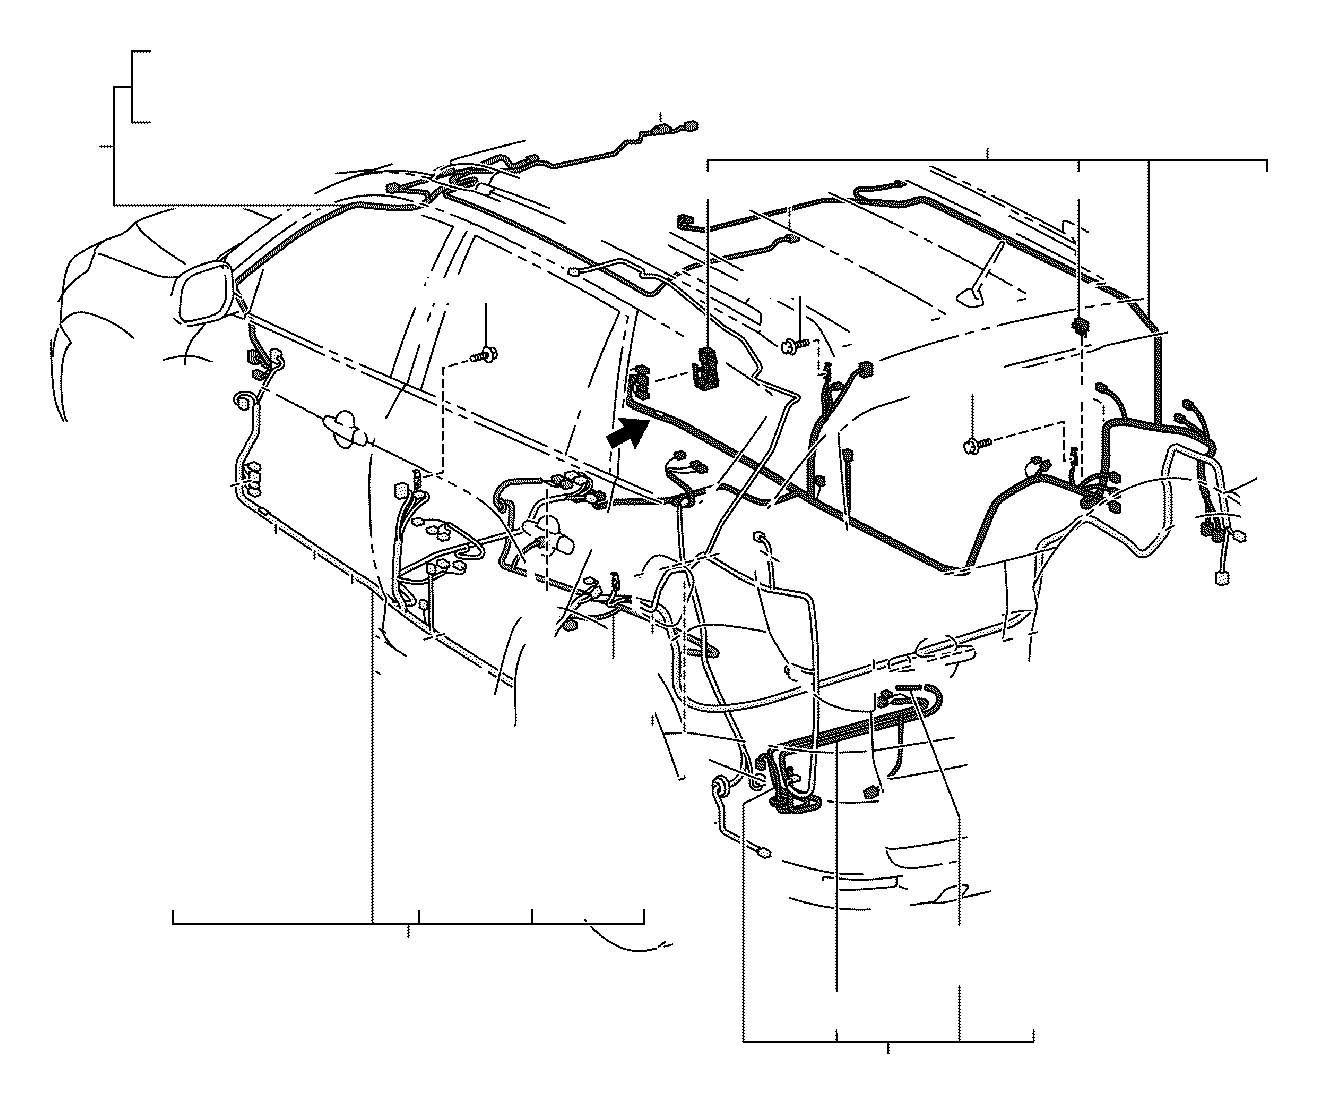 Toyota RAV4 Wire, floor, no. 2. Electrical, limd, wiring